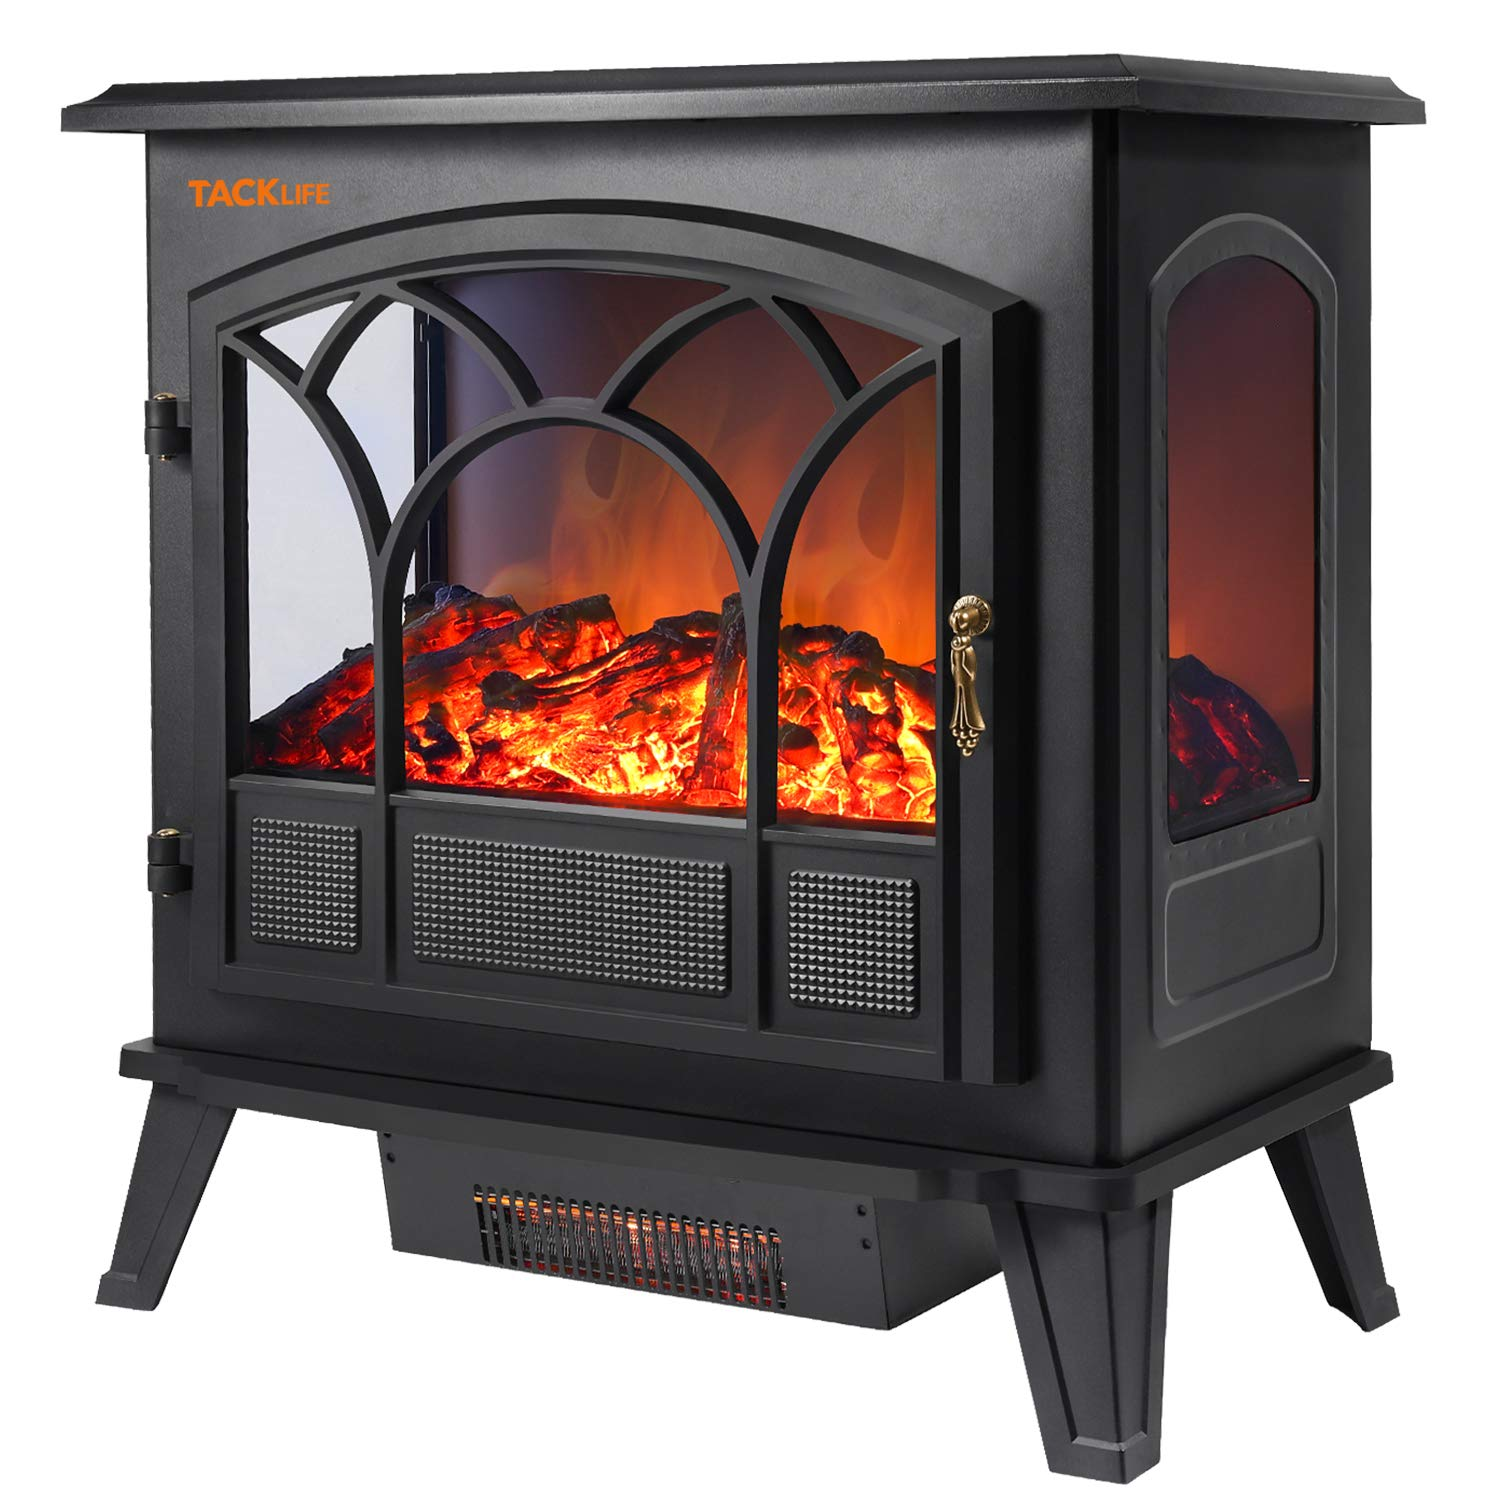 TACKLIFE Electric Fireplace Heater, 25 Inch Dual Temperature Control 750 W 1500W Electric Fireplace, Portable Indoor Space Heater, with 3-D Flame Effect, CSA Certification, Indoor Companion